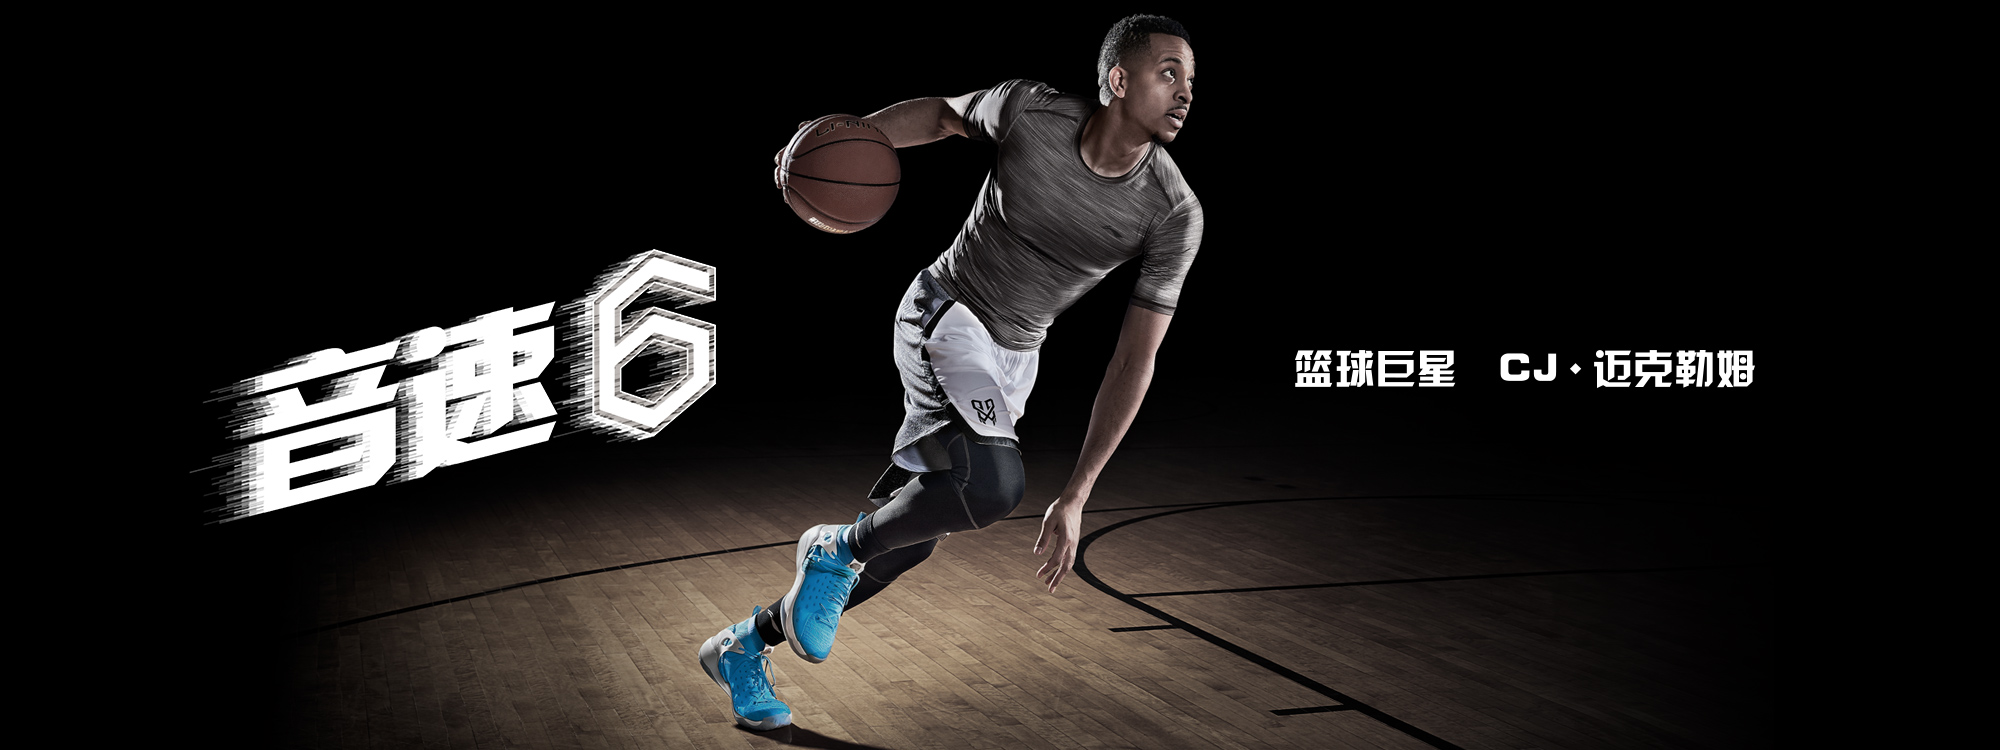 Li-Ning Basketball Shoes